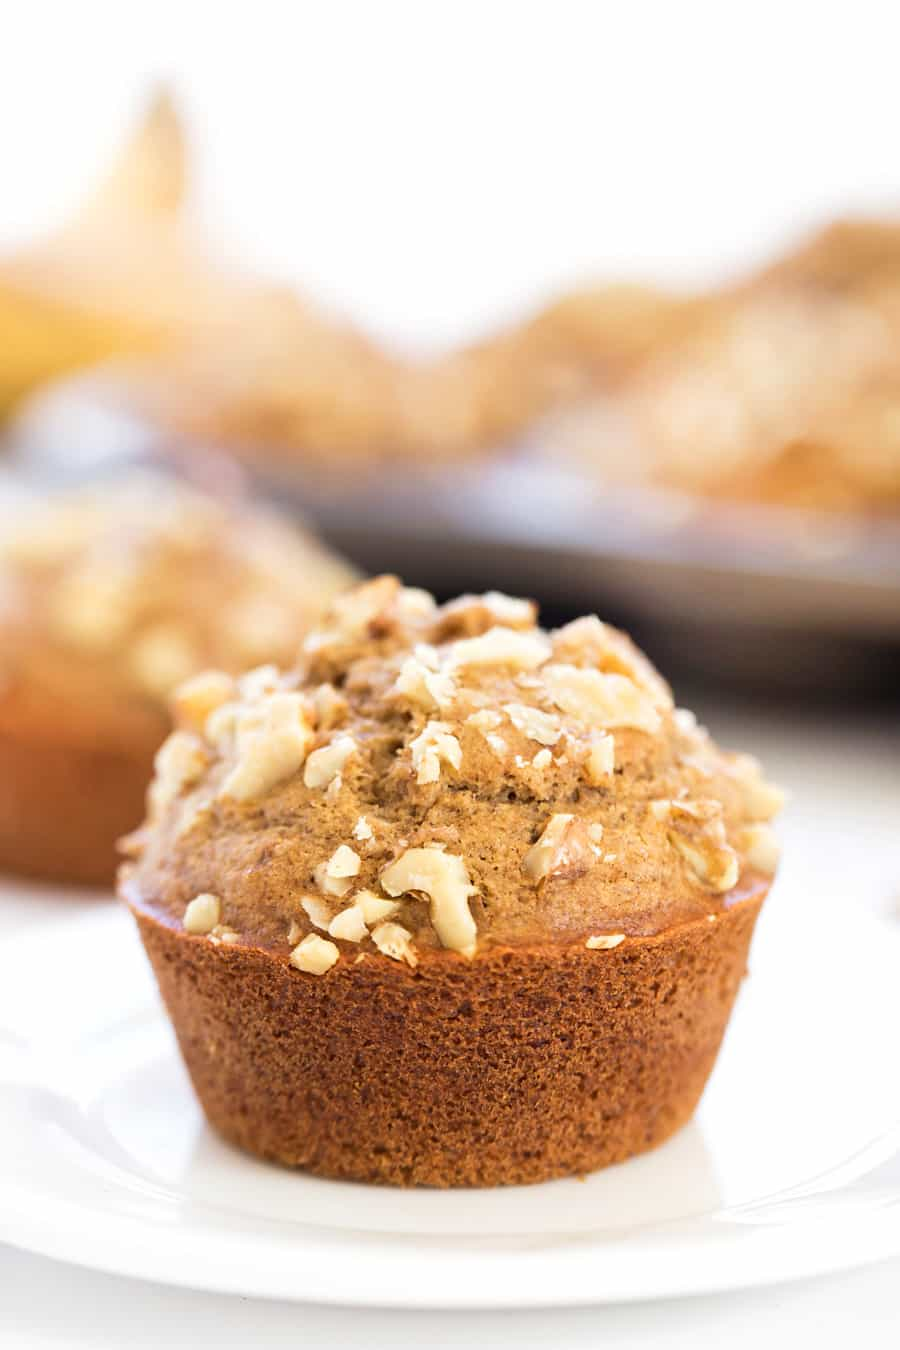 These AMAZING Banana Bread Muffins might be gluten-free, but you'd never be able to tell!